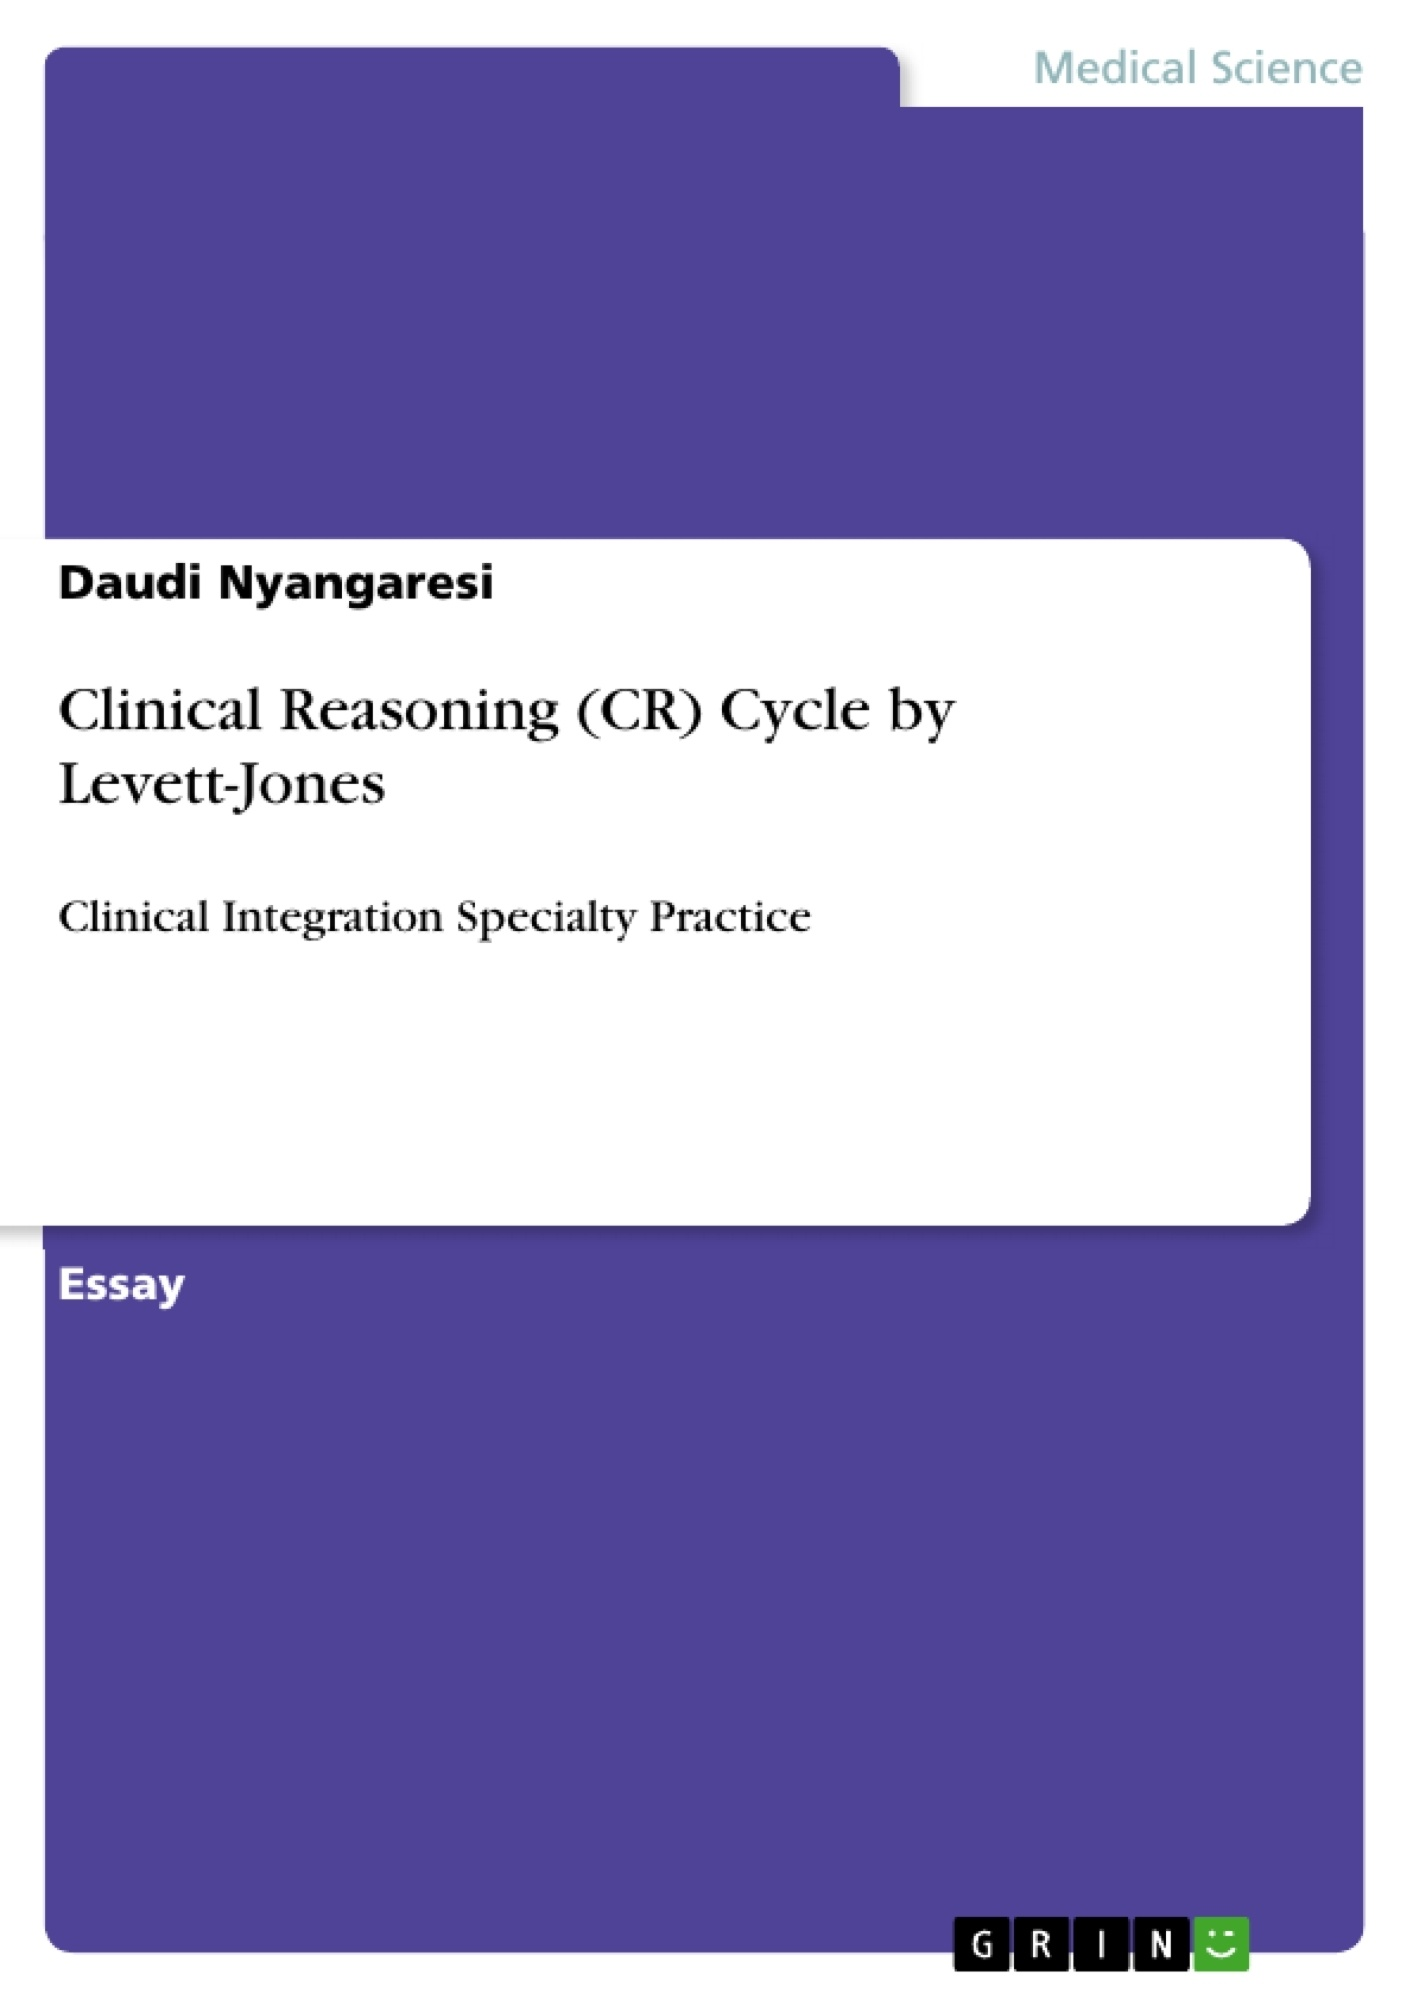 Title: Clinical Reasoning (CR) Cycle by Levett-Jones